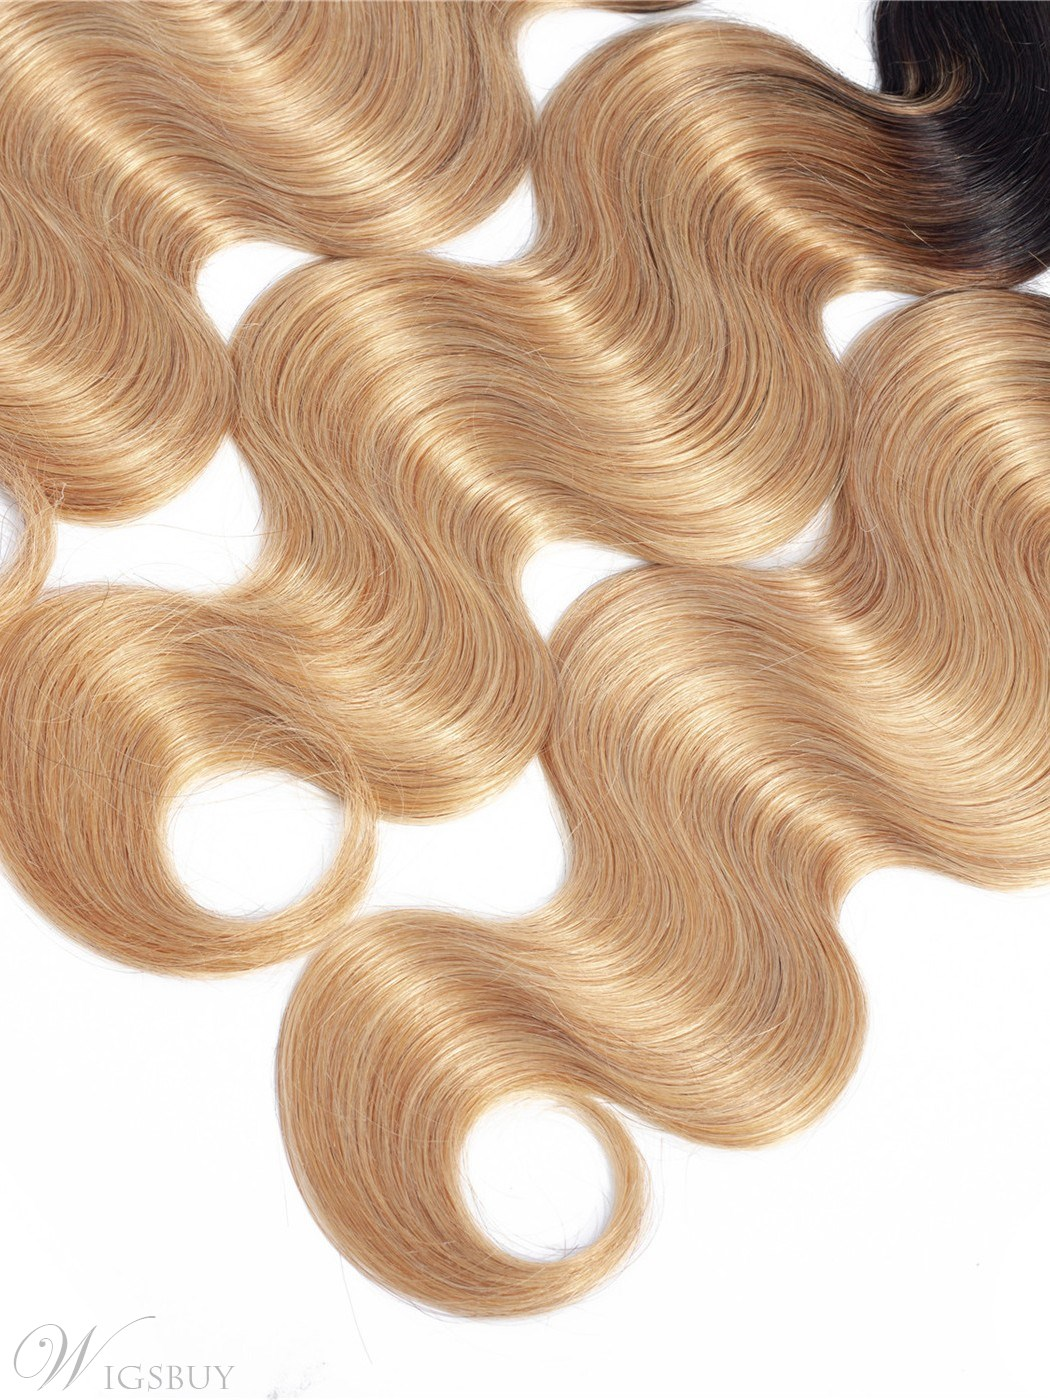 Wigsbuy Ombre Color Body Wave Human Hair Bundles1b/27